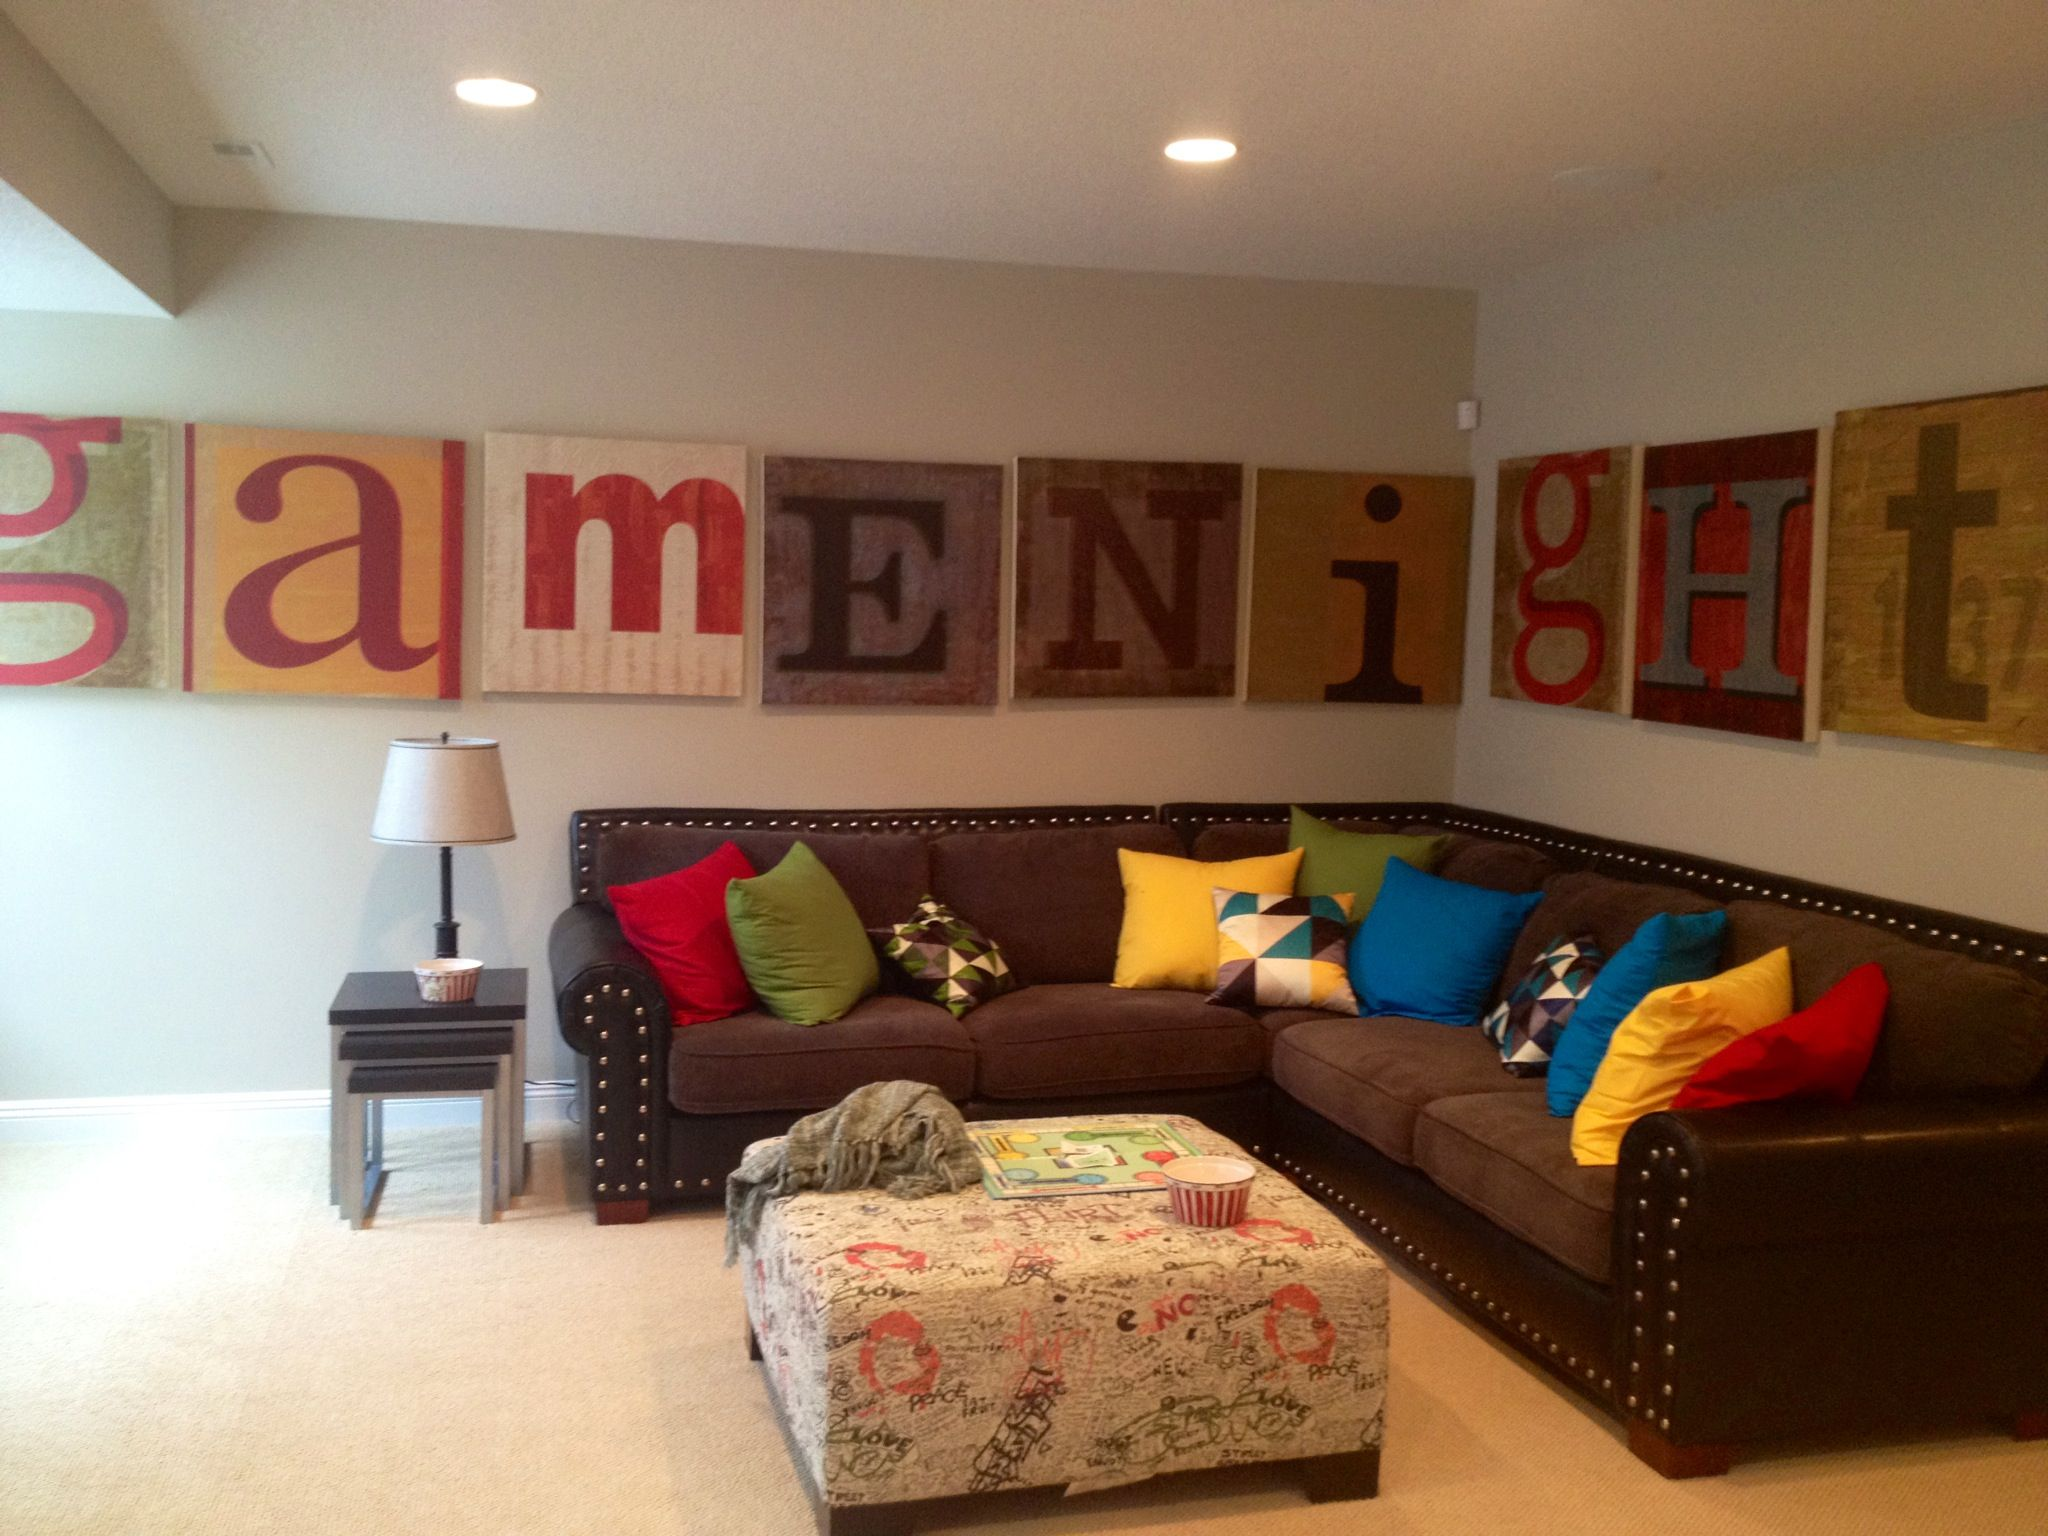 Fun Family Room | Decor/home / Fun Family Room Wall Art. Maybe We